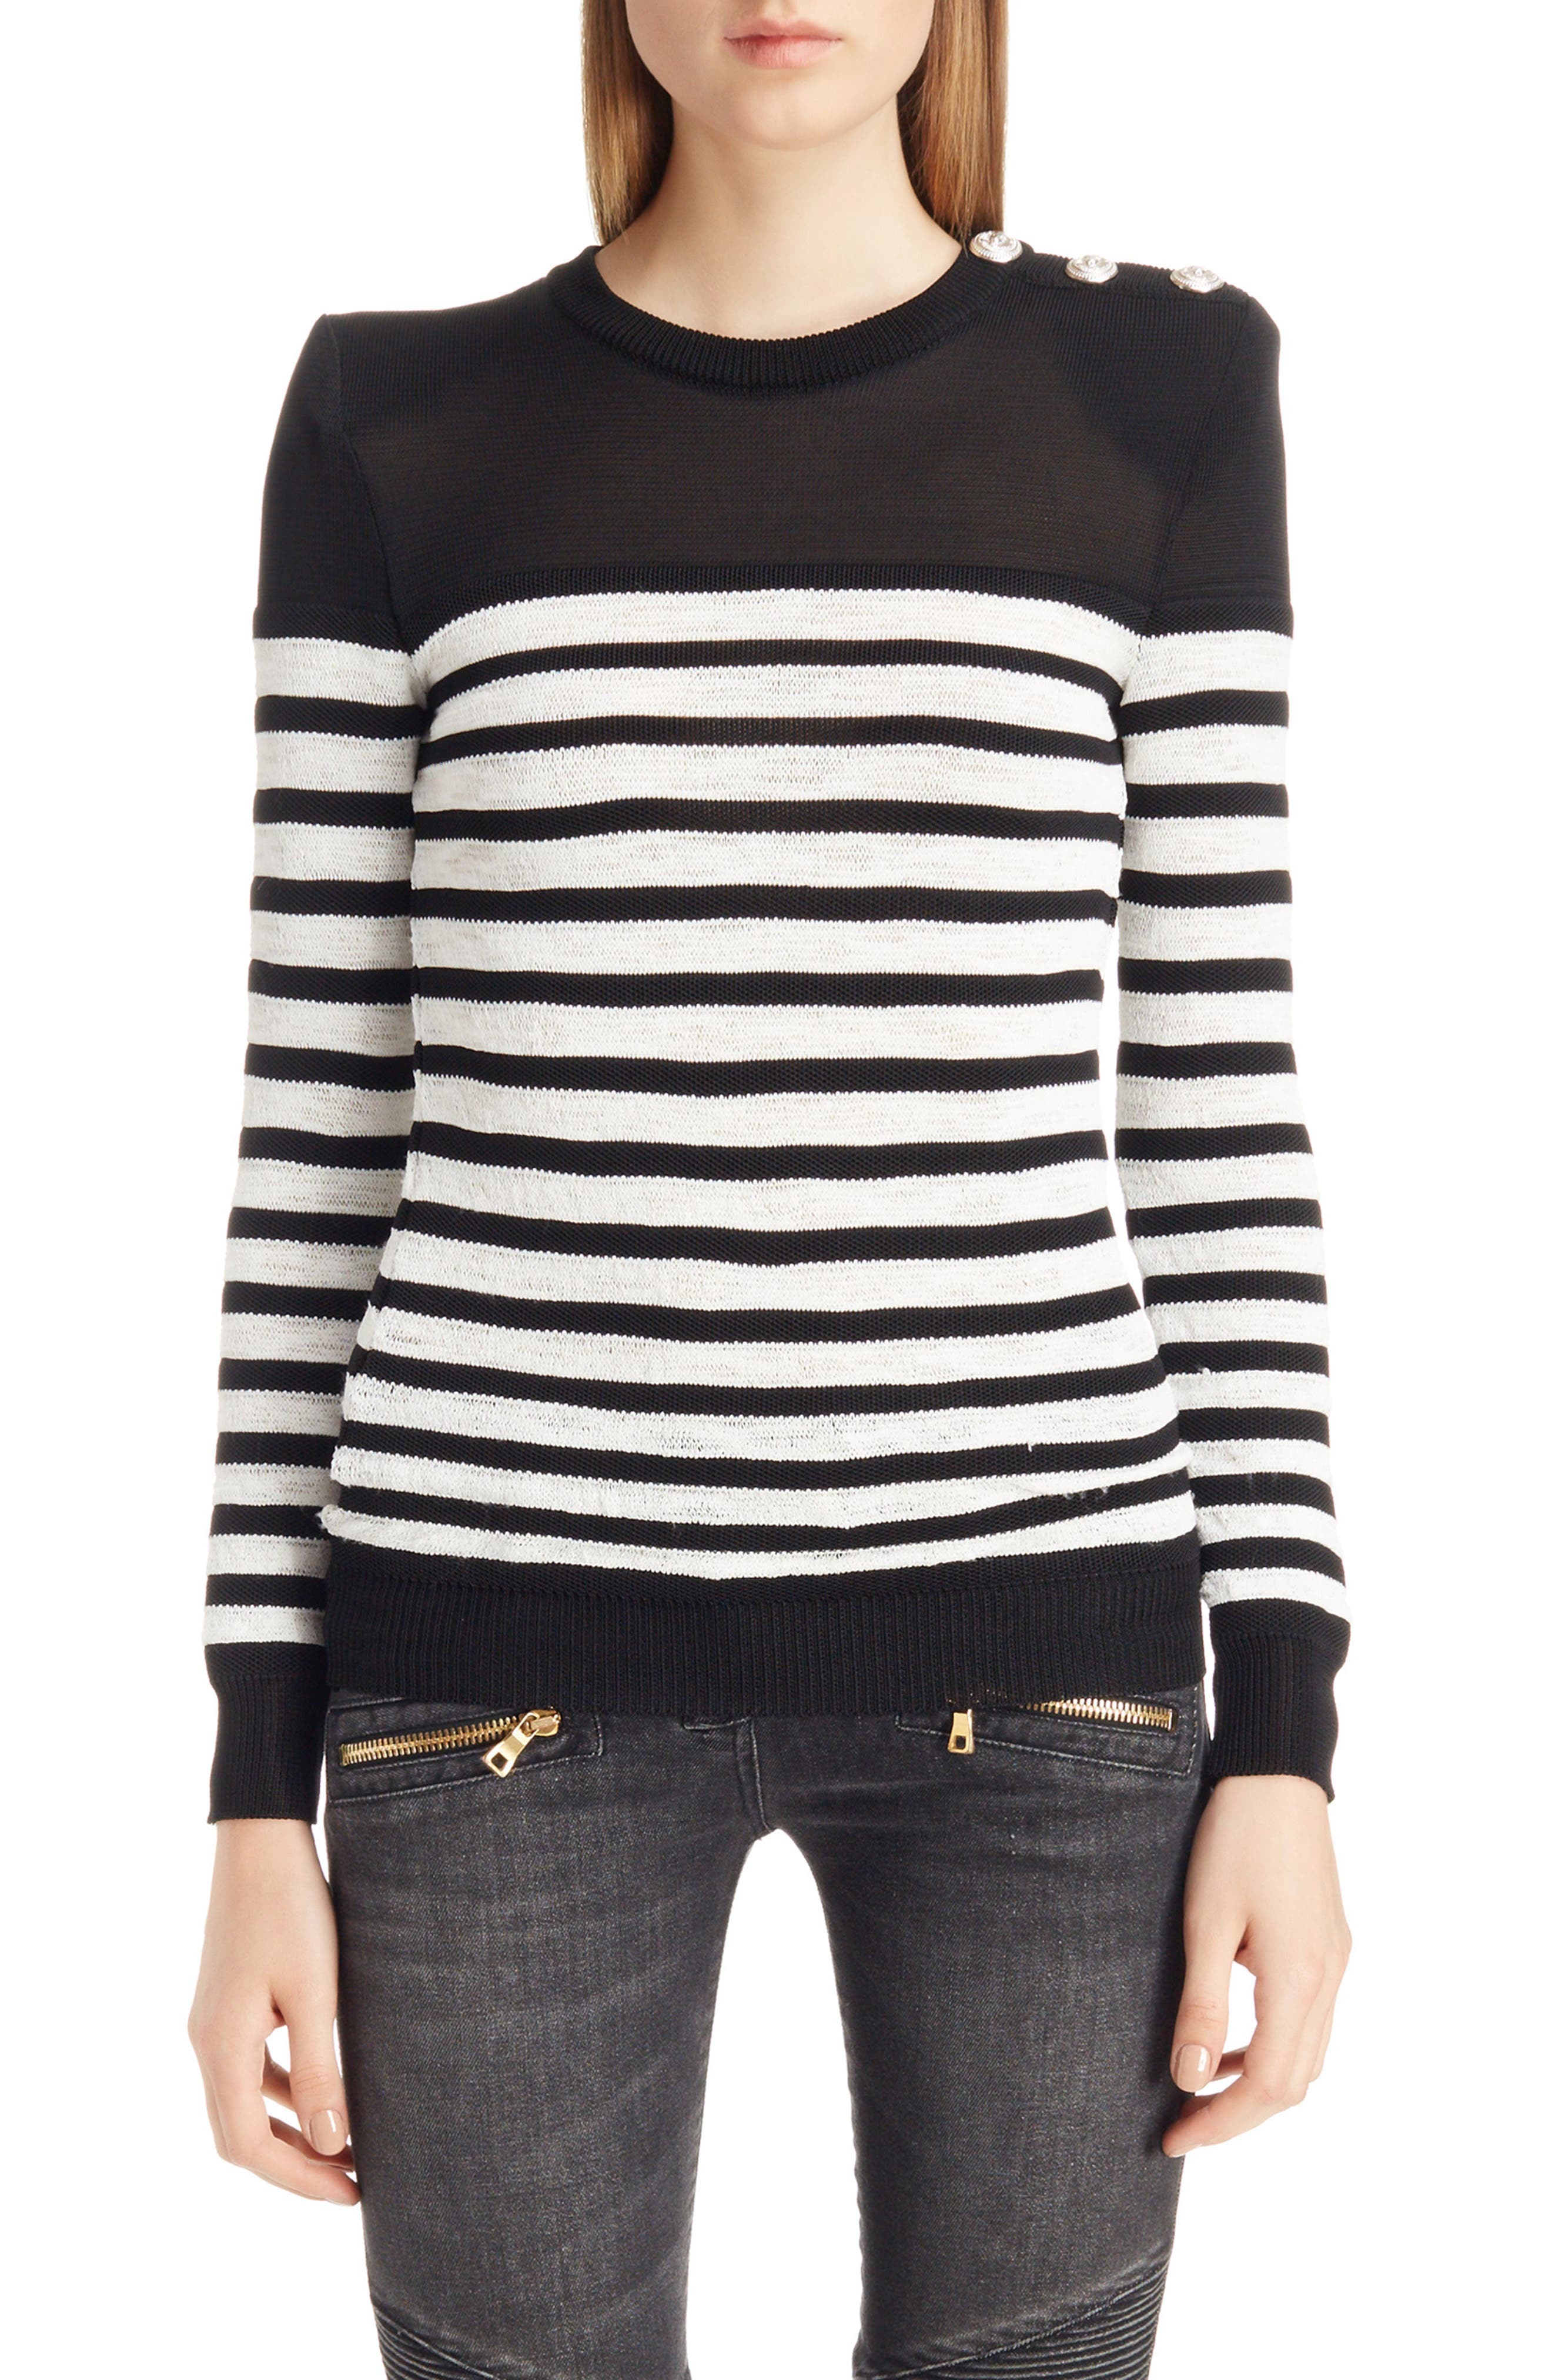 Marine Stripe Knit Sweater,                             Main thumbnail 1, color,                             Black And White